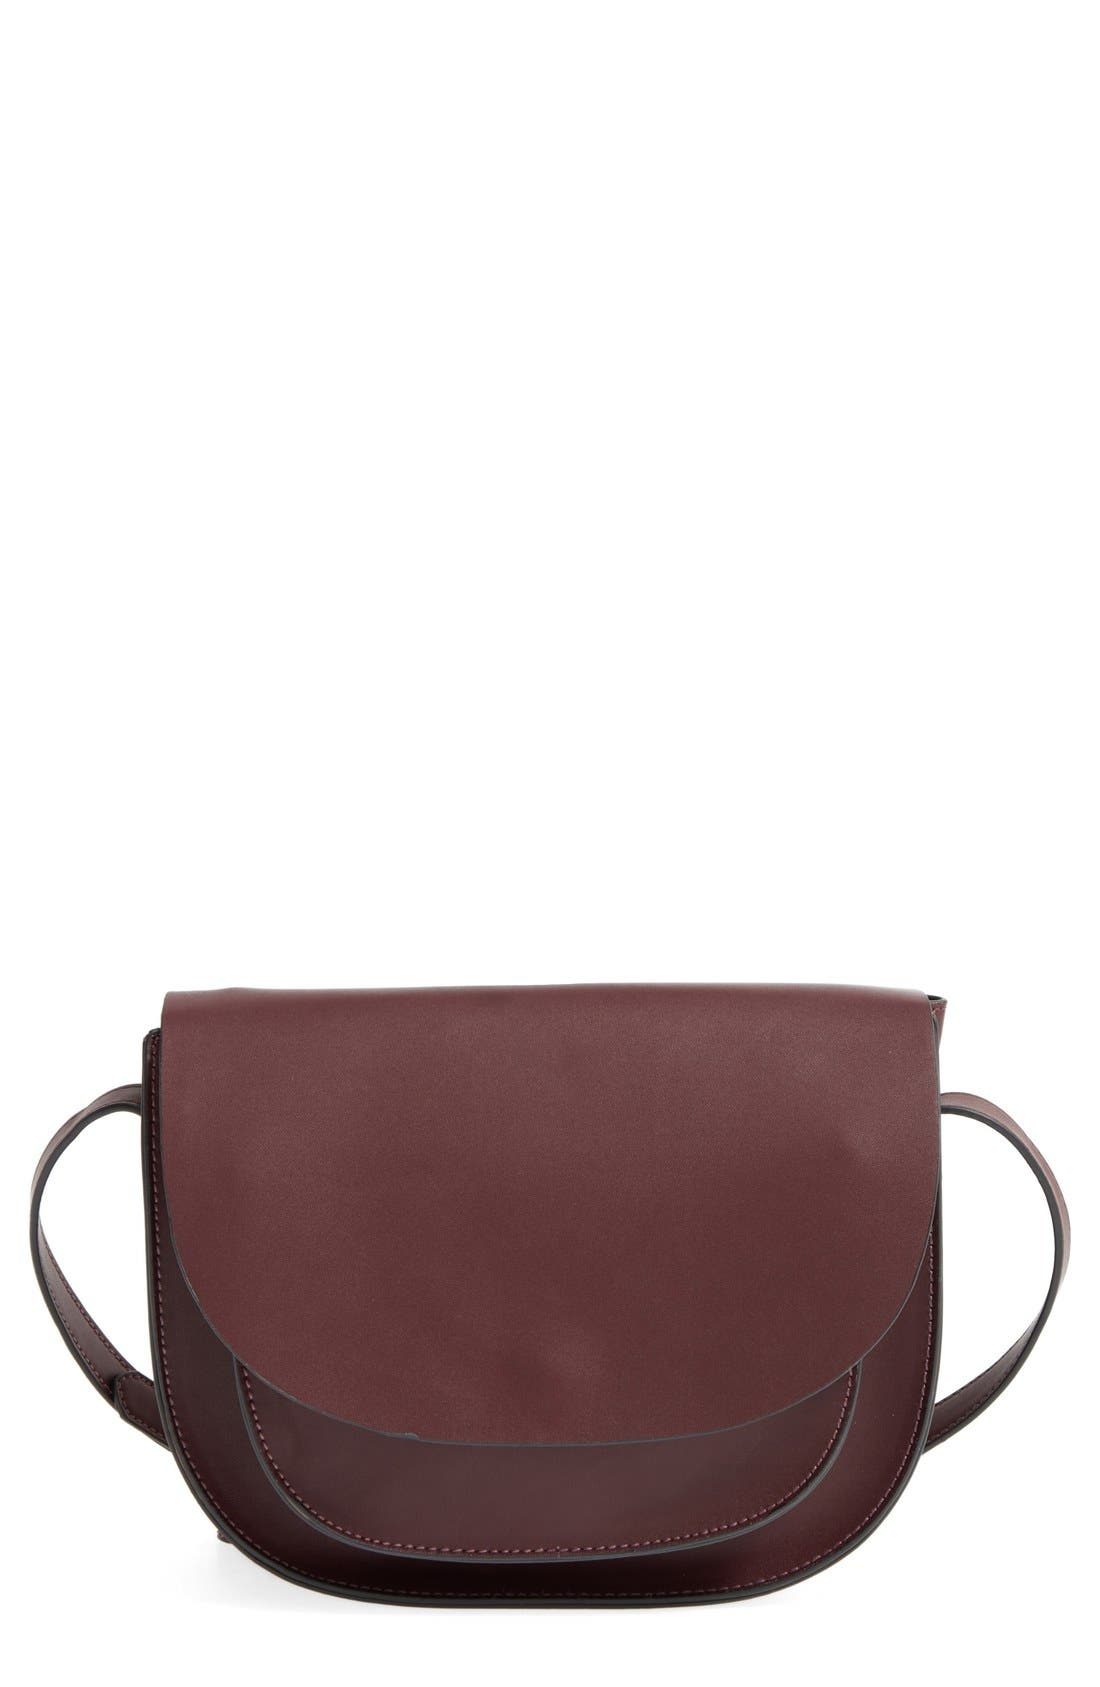 Main Image - Sole Society Claire Faux Leather Crossbody Bag